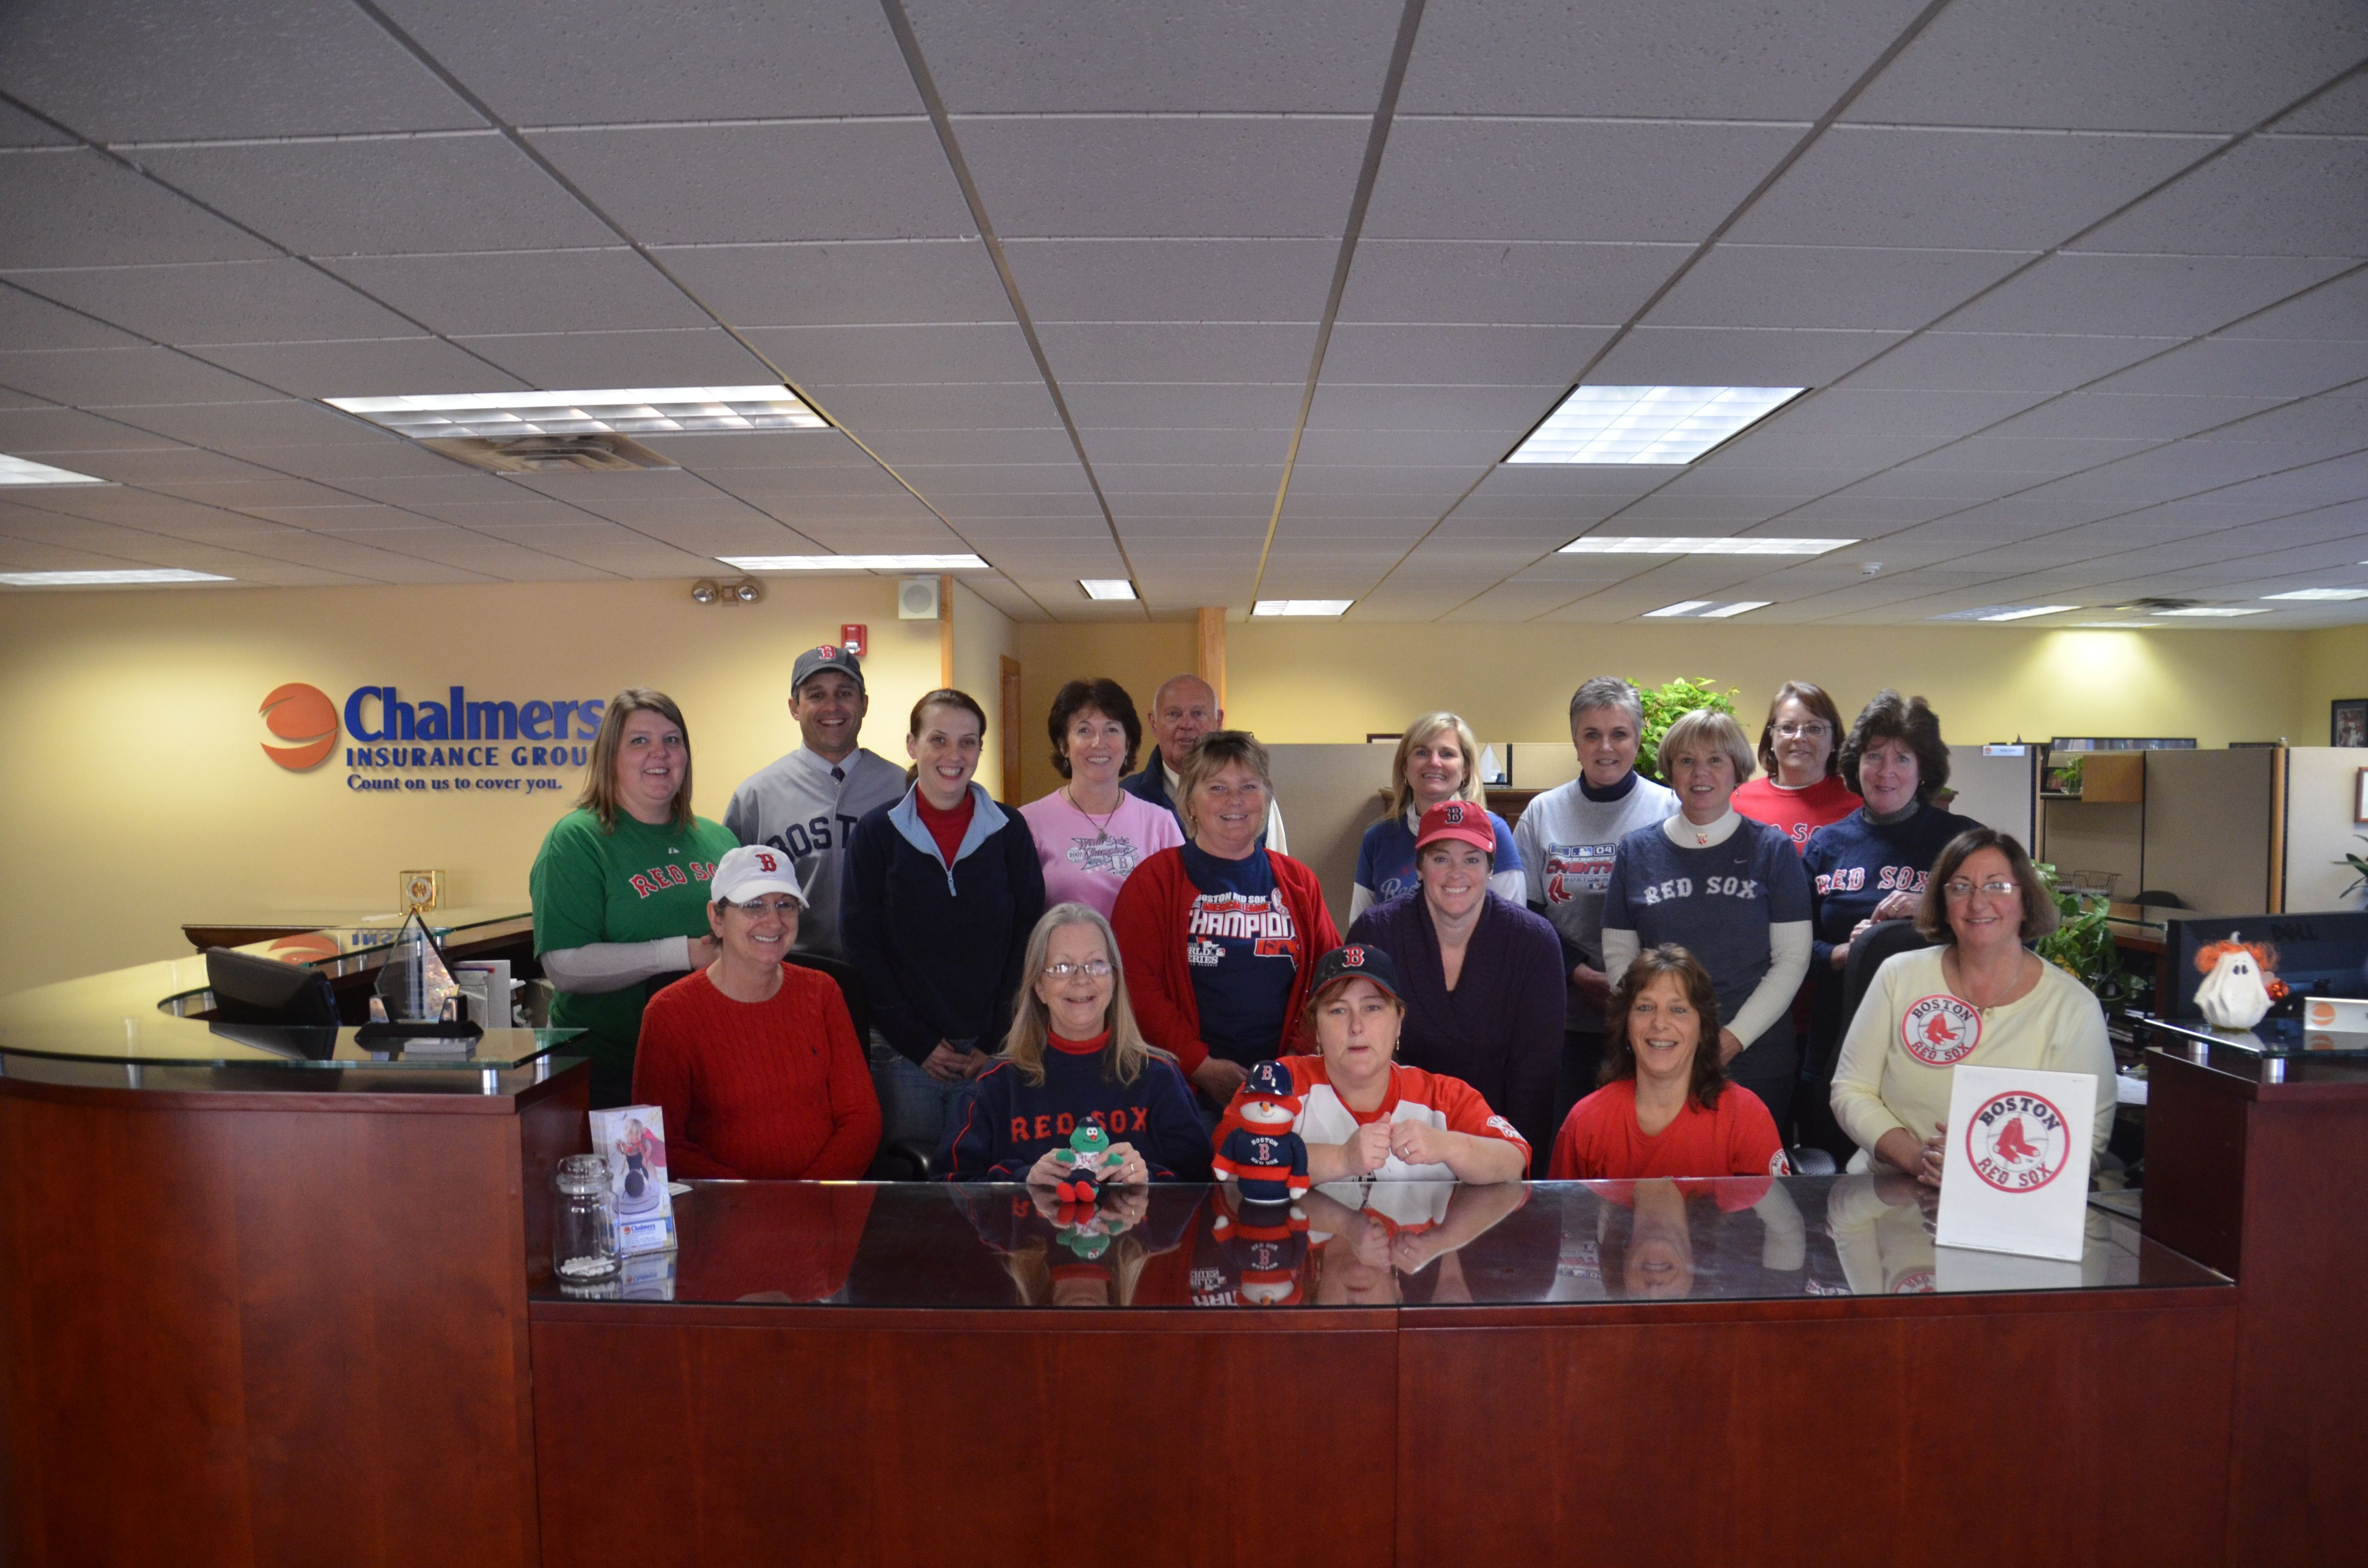 North conway insurance agents represent with world series